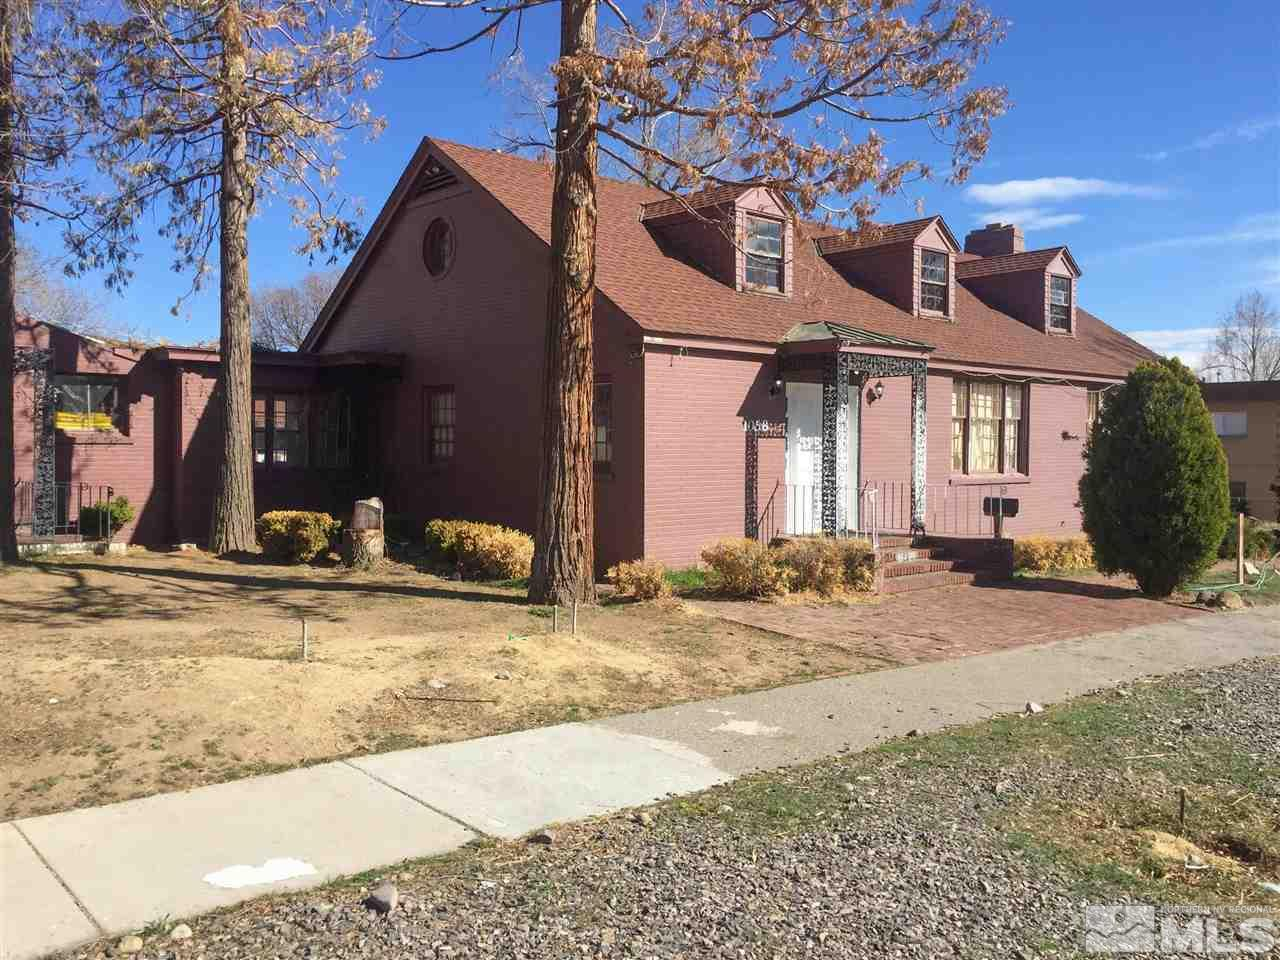 Image for 1058 Bell St, Reno, NV 89503-2834